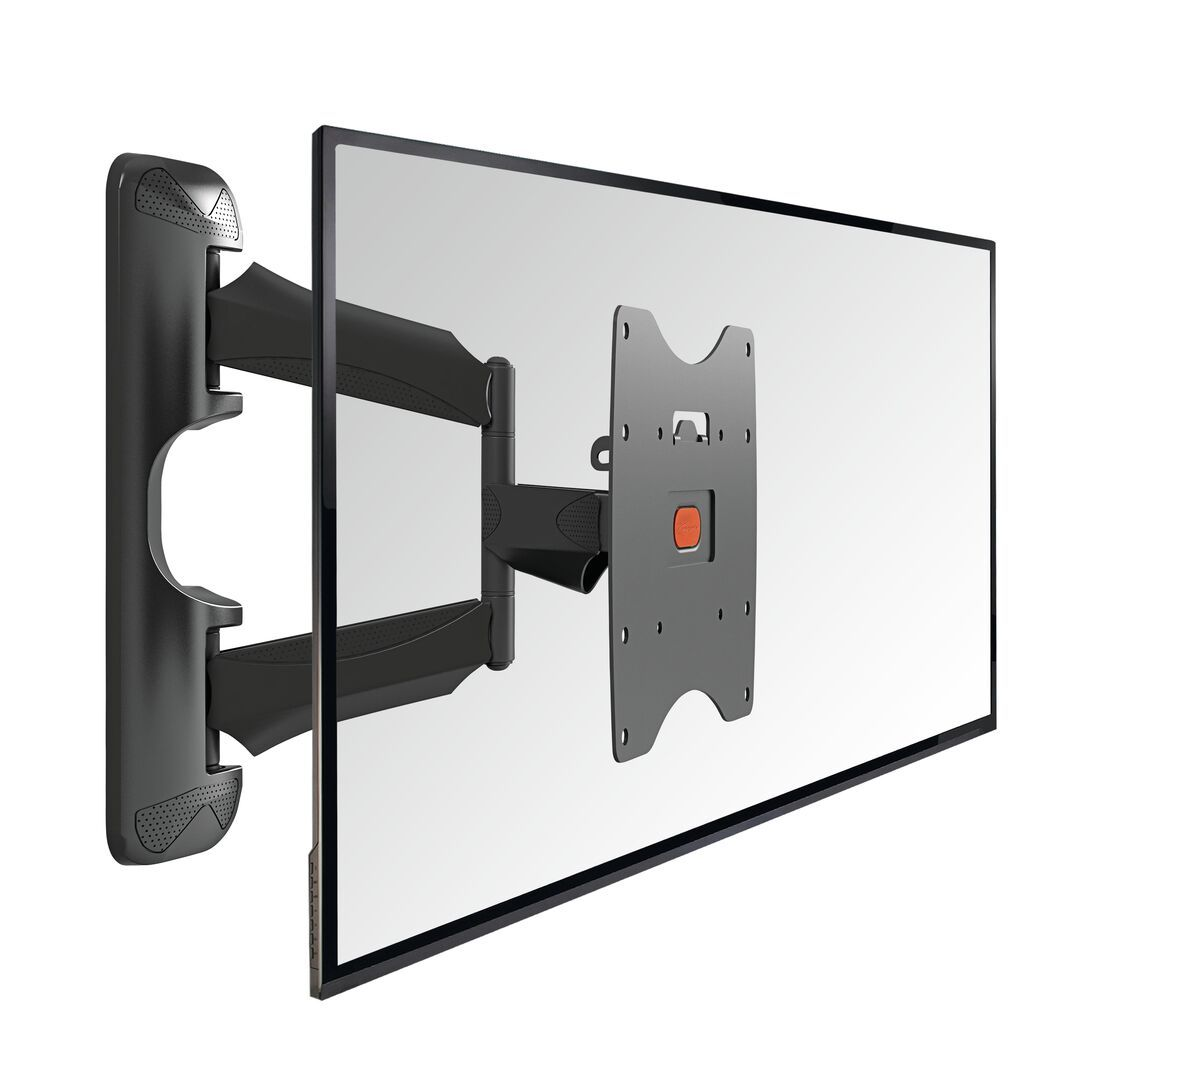 Vogel's BASE 45 S Full-Motion TV Wall Mount - Suitable for 19 up to 43 inch TVs - Full motion (up to 180°) - Tilt up to 15° - Product